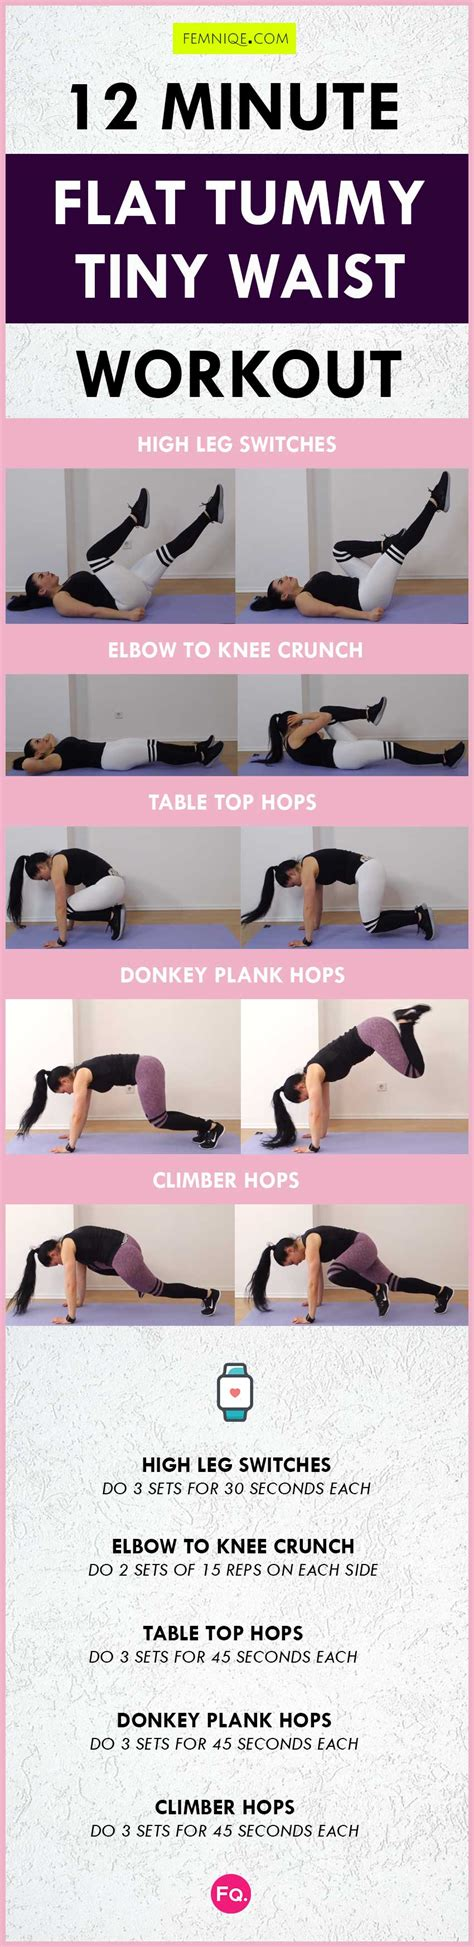 flat tummy exercises 12 minute workout for smaller waist flat belly femniqe